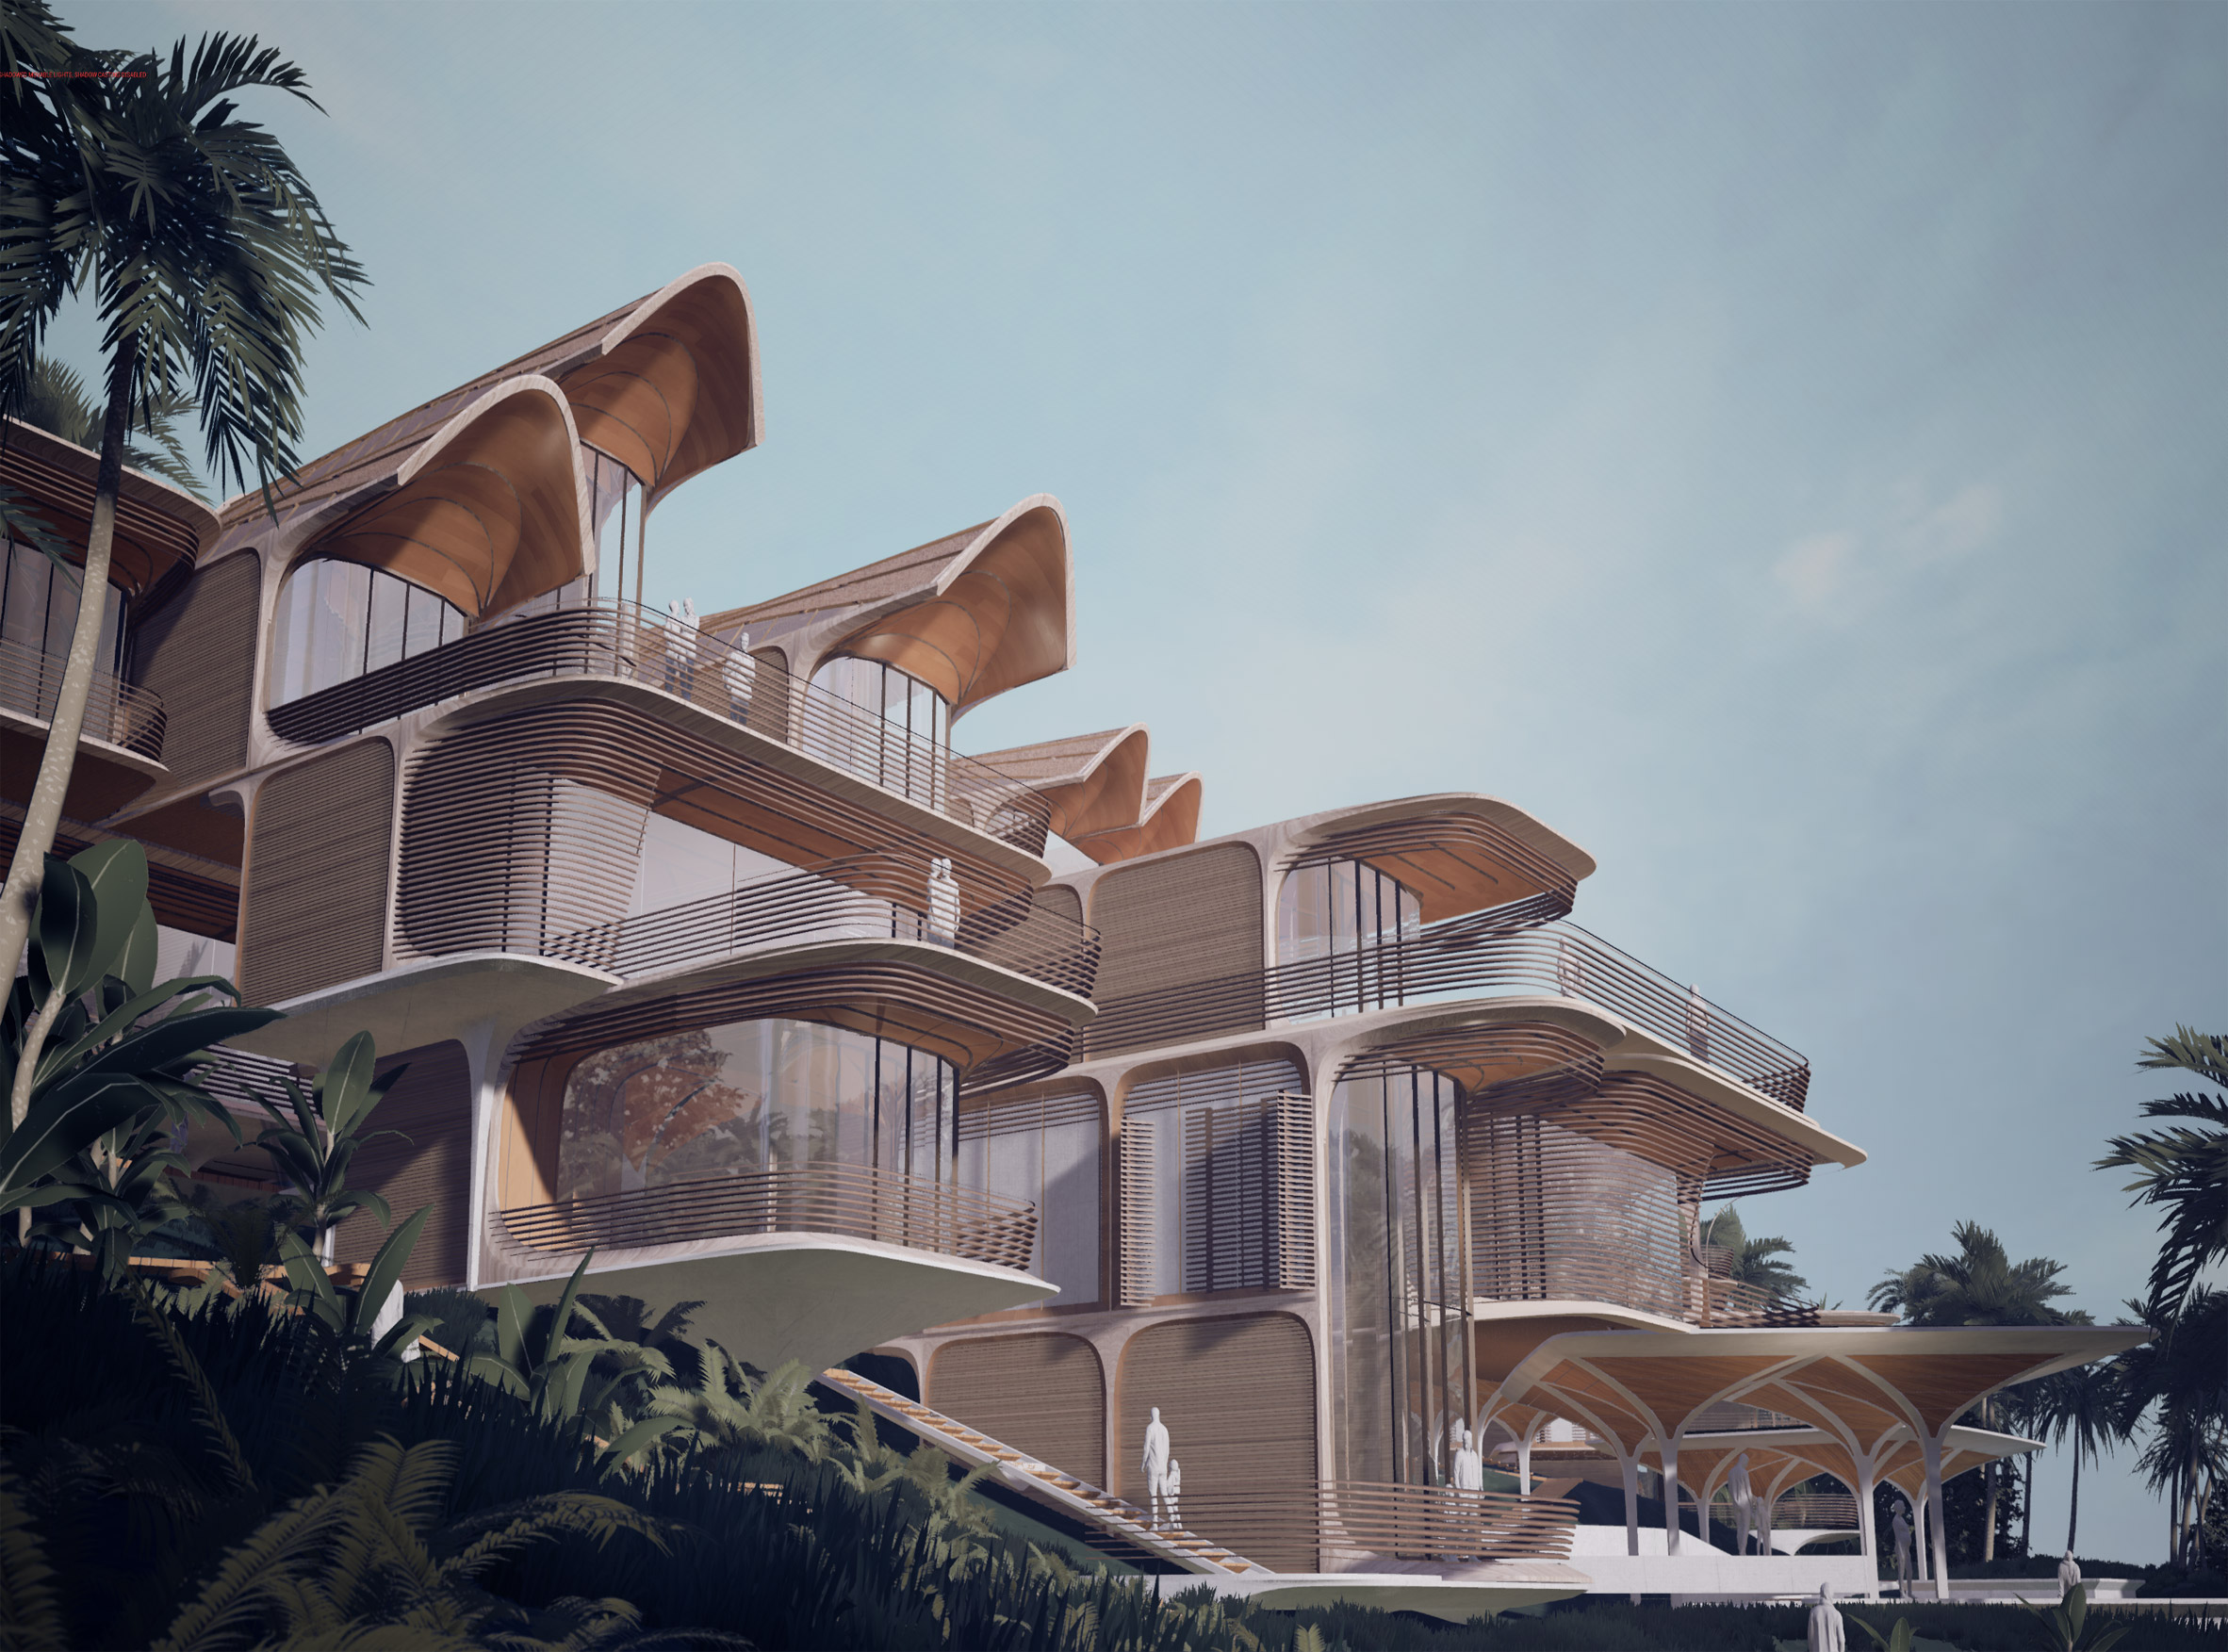 Roatán Próspera Residences by Zaha Hadid Architects